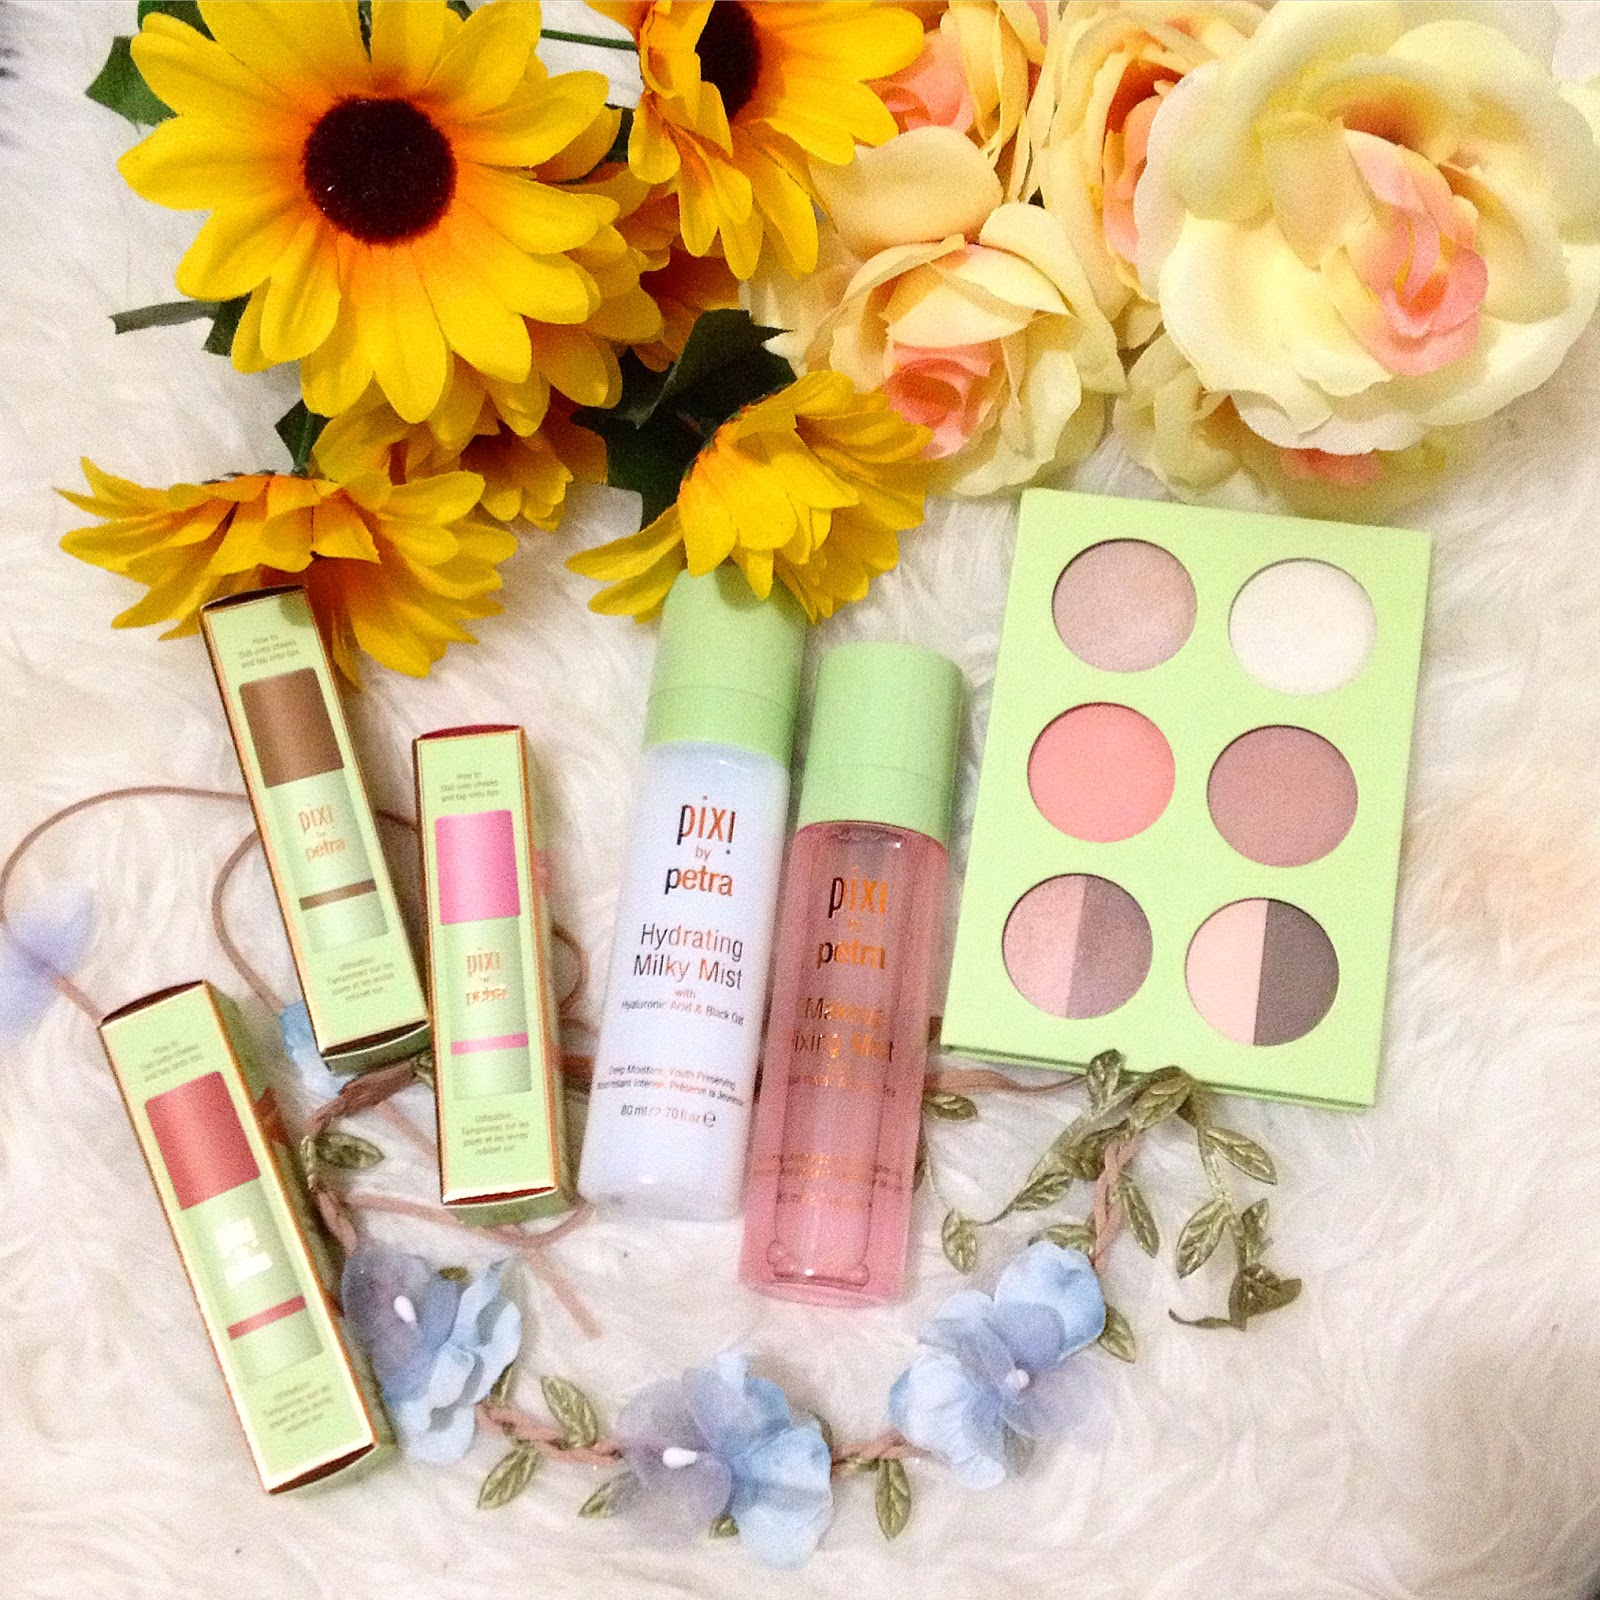 My Little Things ~ Beauty Diary by Monica: Multi-Misting with Pixi